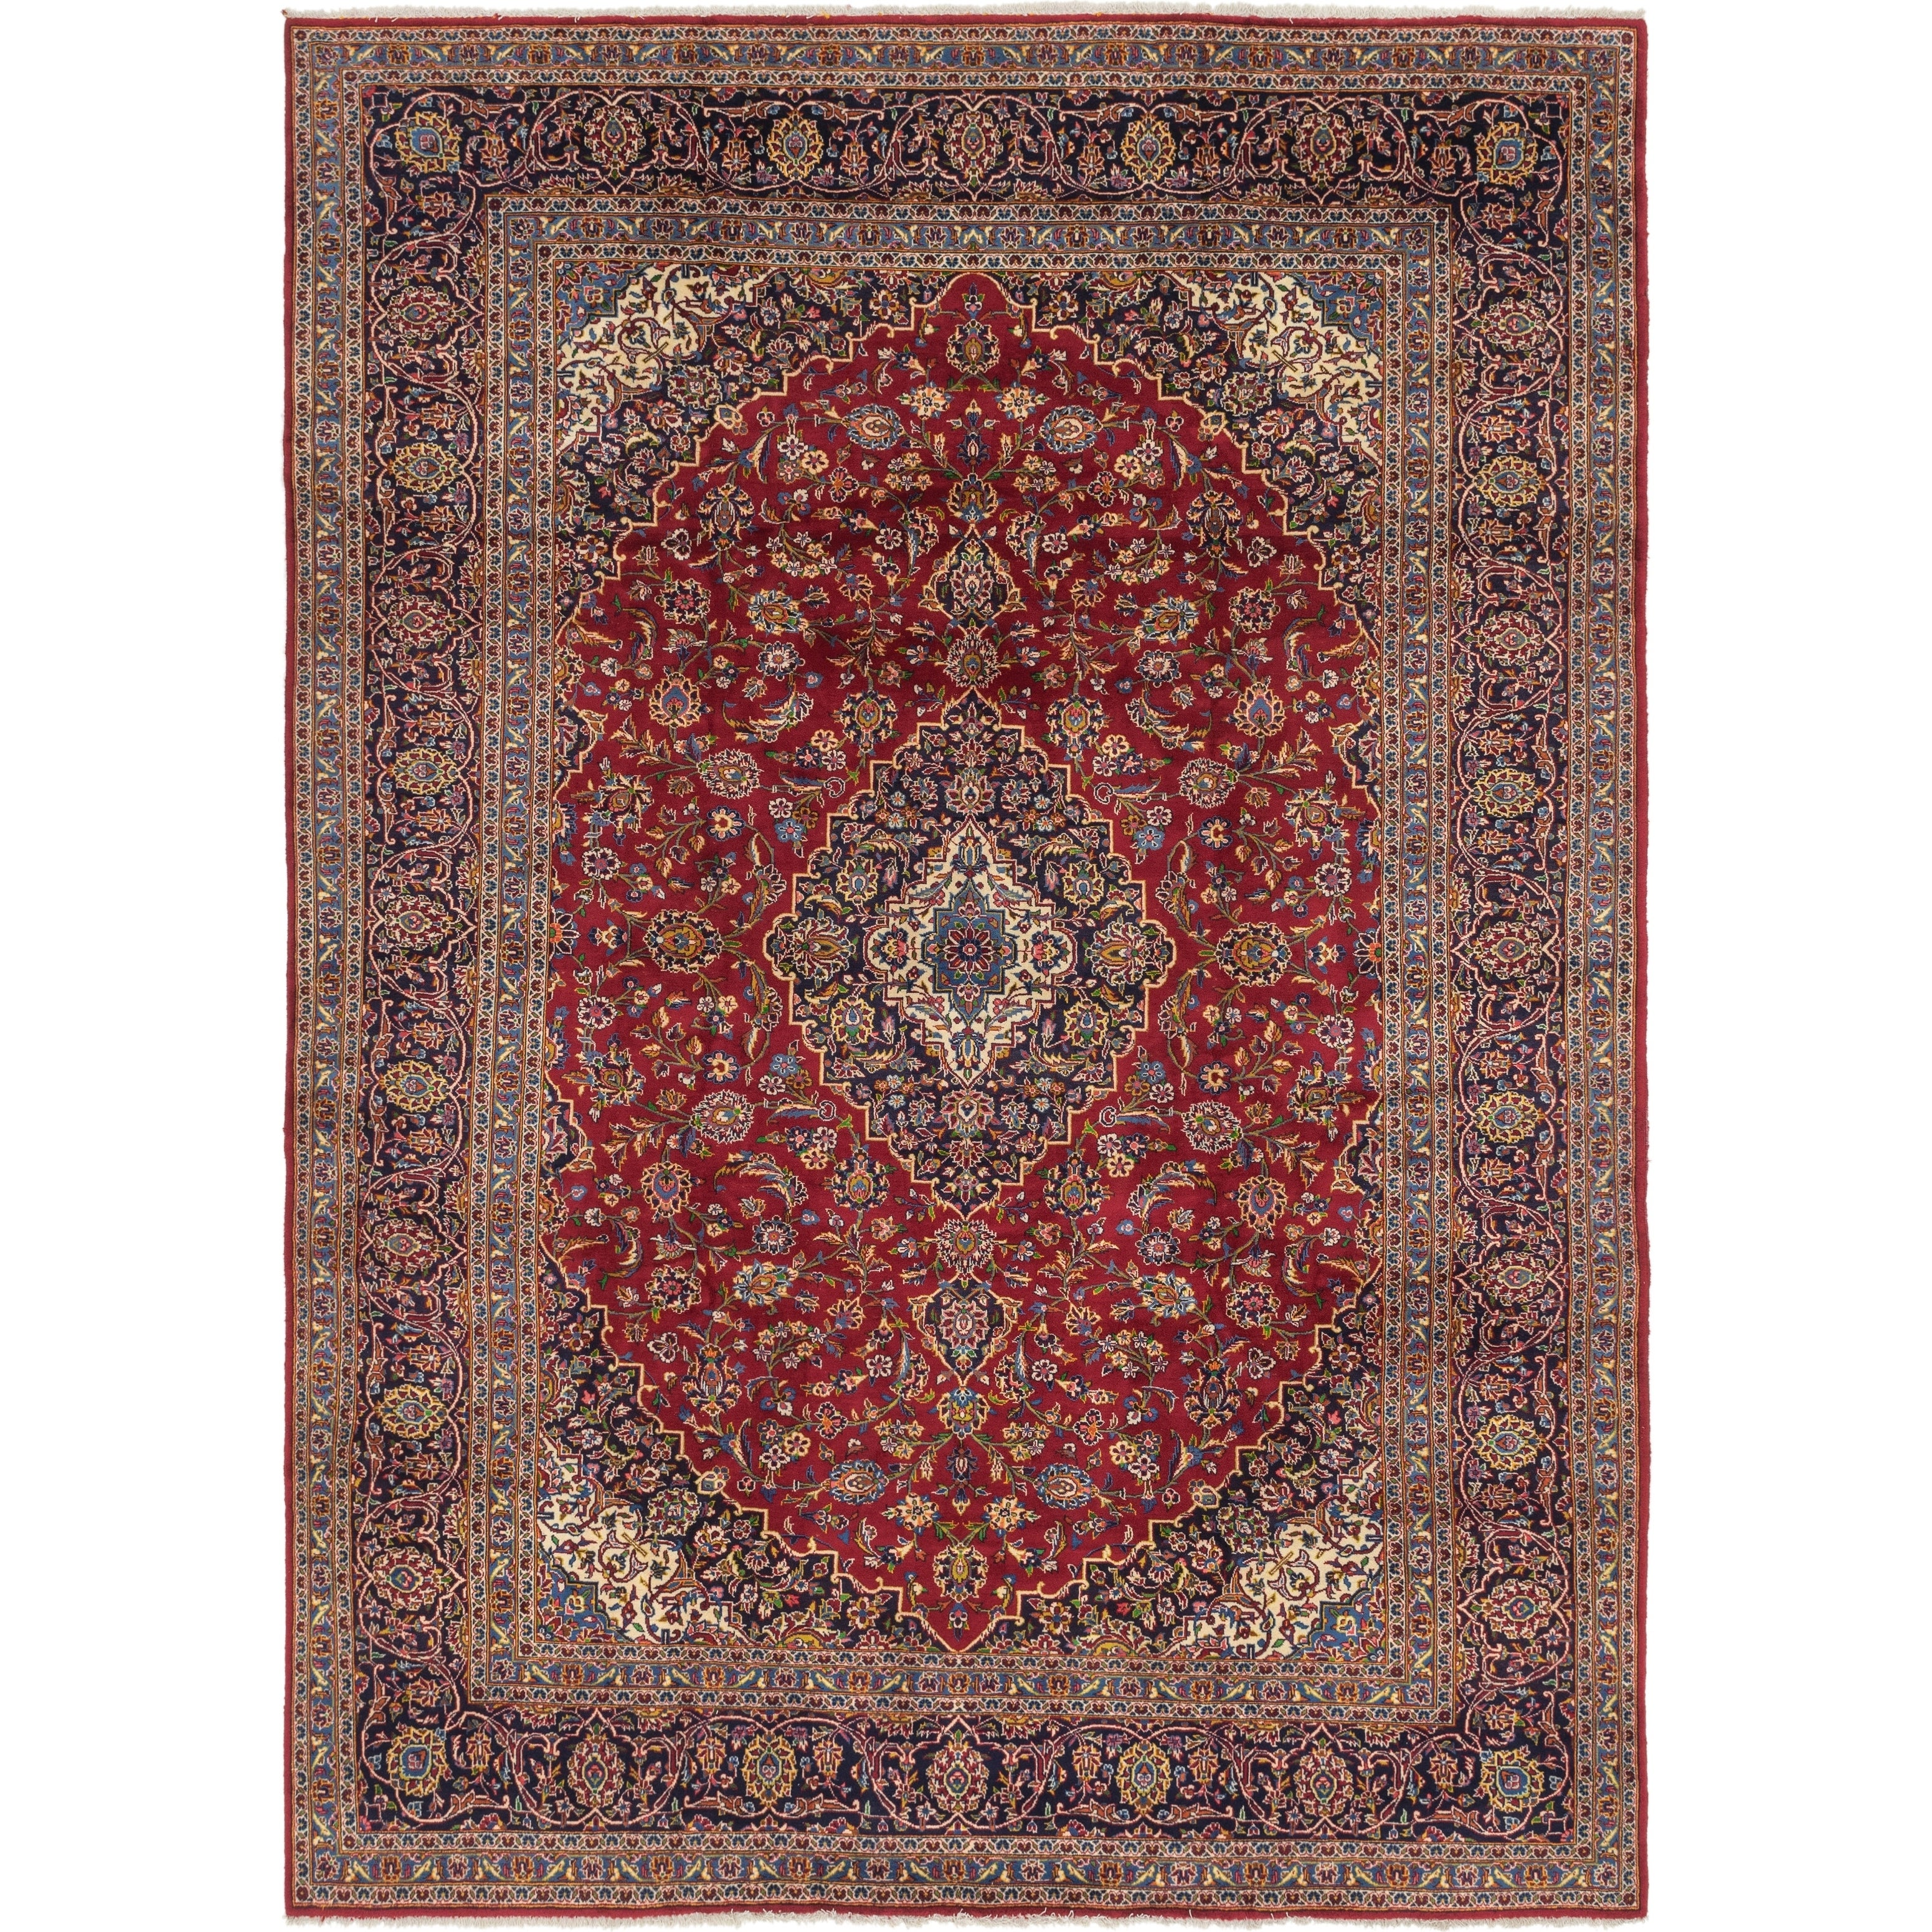 Hand Knotted Kashan Wool Area Rug - 9 4 x 12 9 (Red - 9 4 x 12 9)